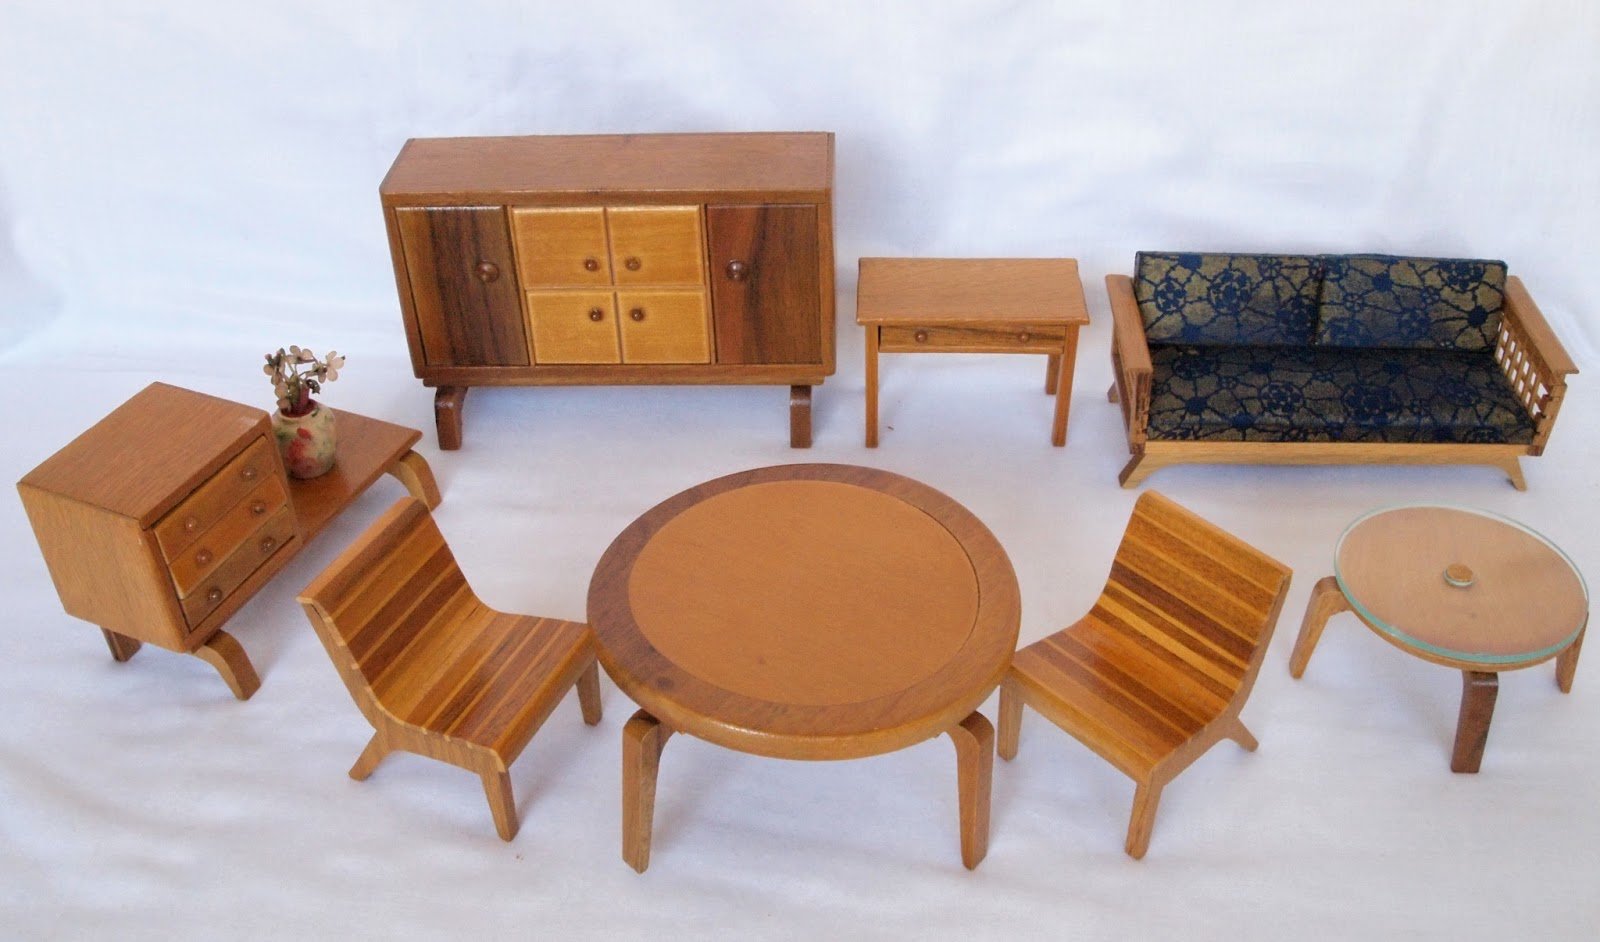 Set of furniture shown in catalogue photo above